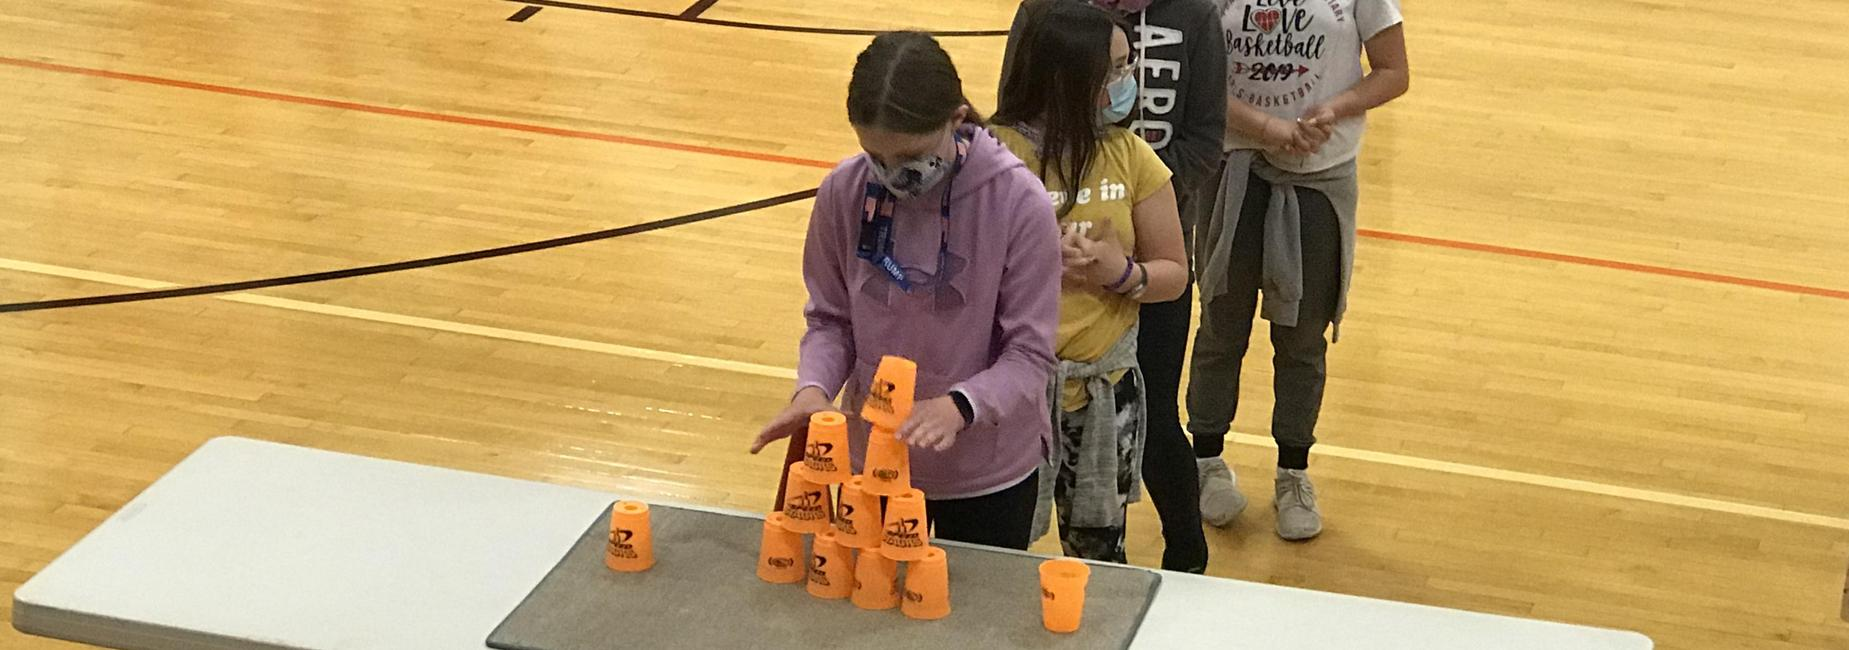 5th speed stacks table stack relay